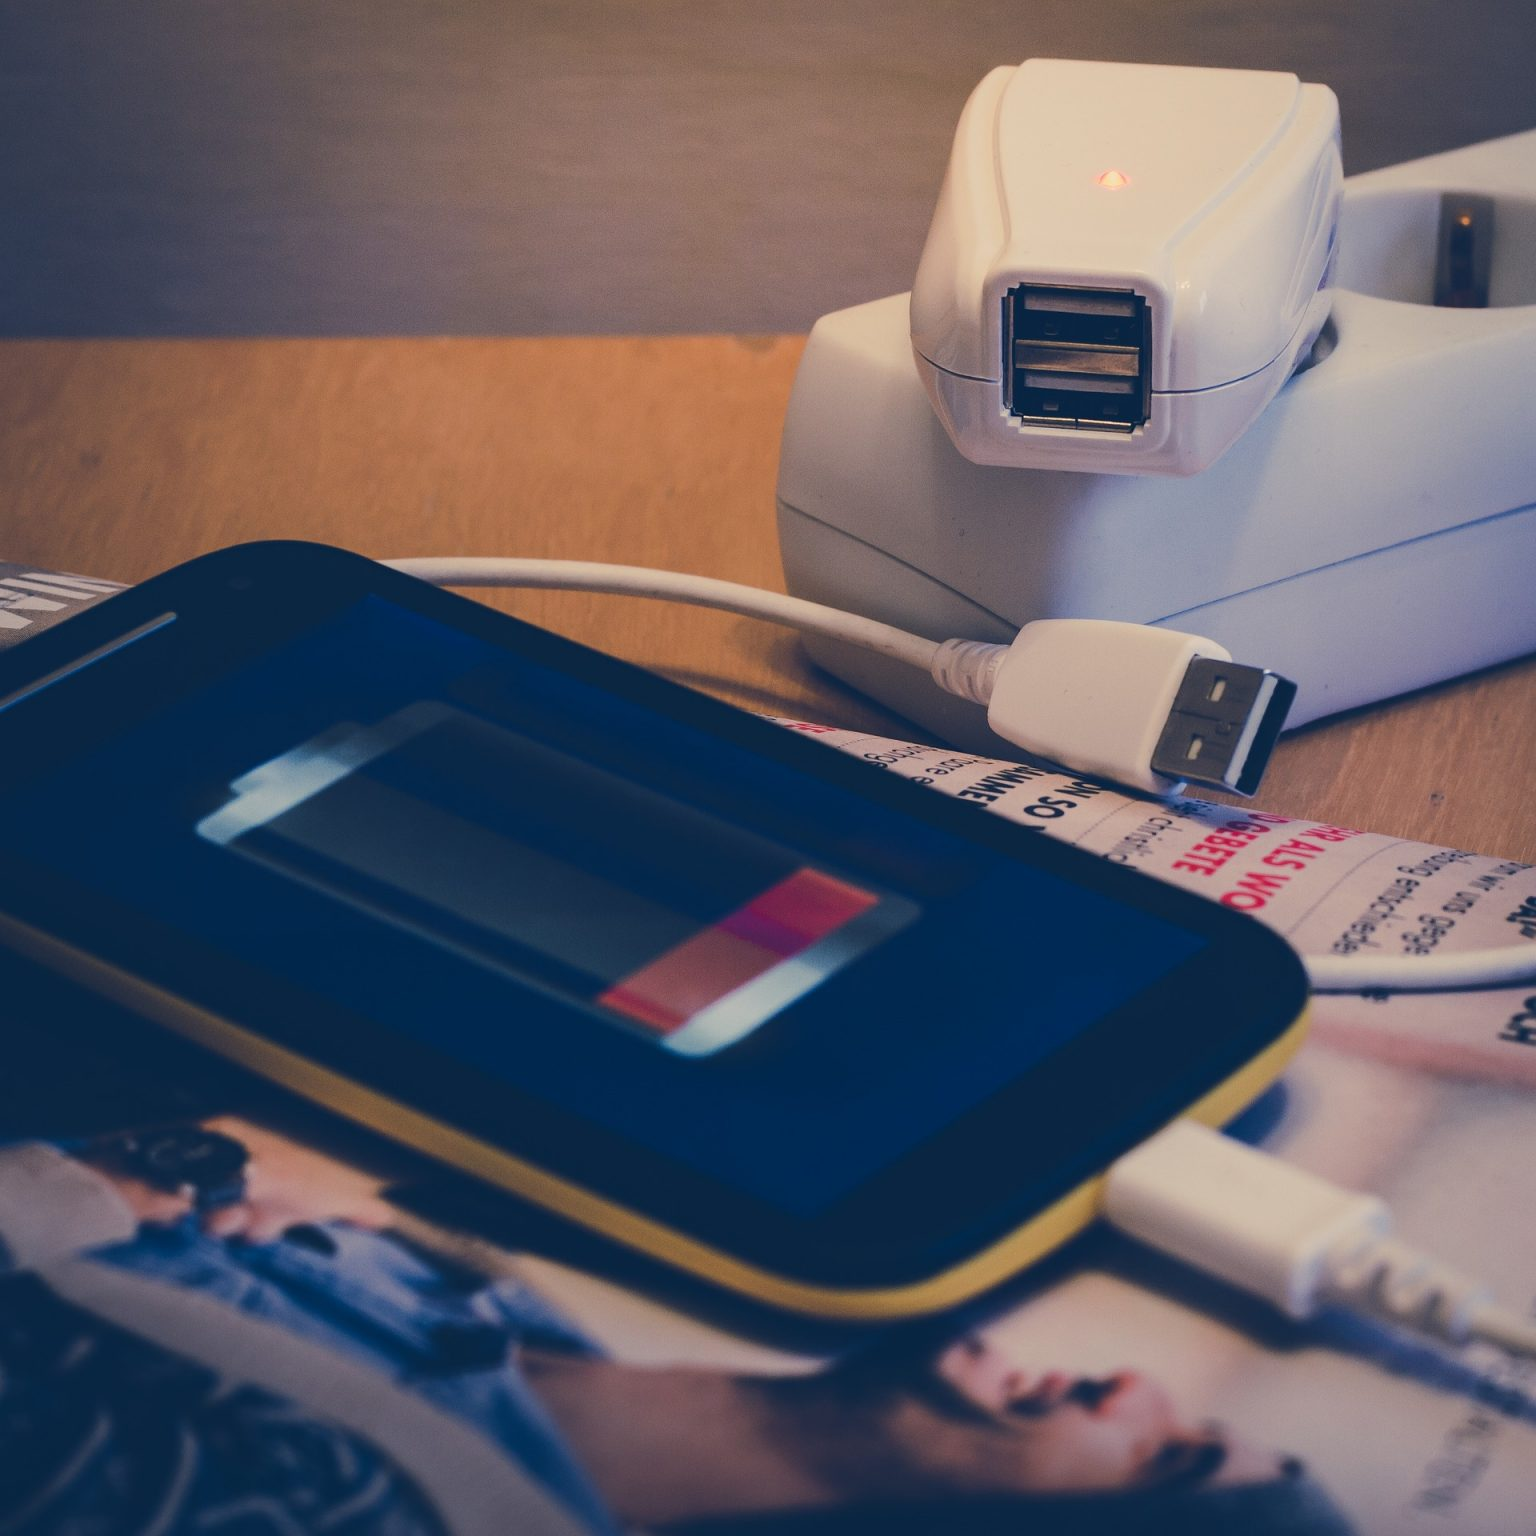 Top tips to increase your battery life